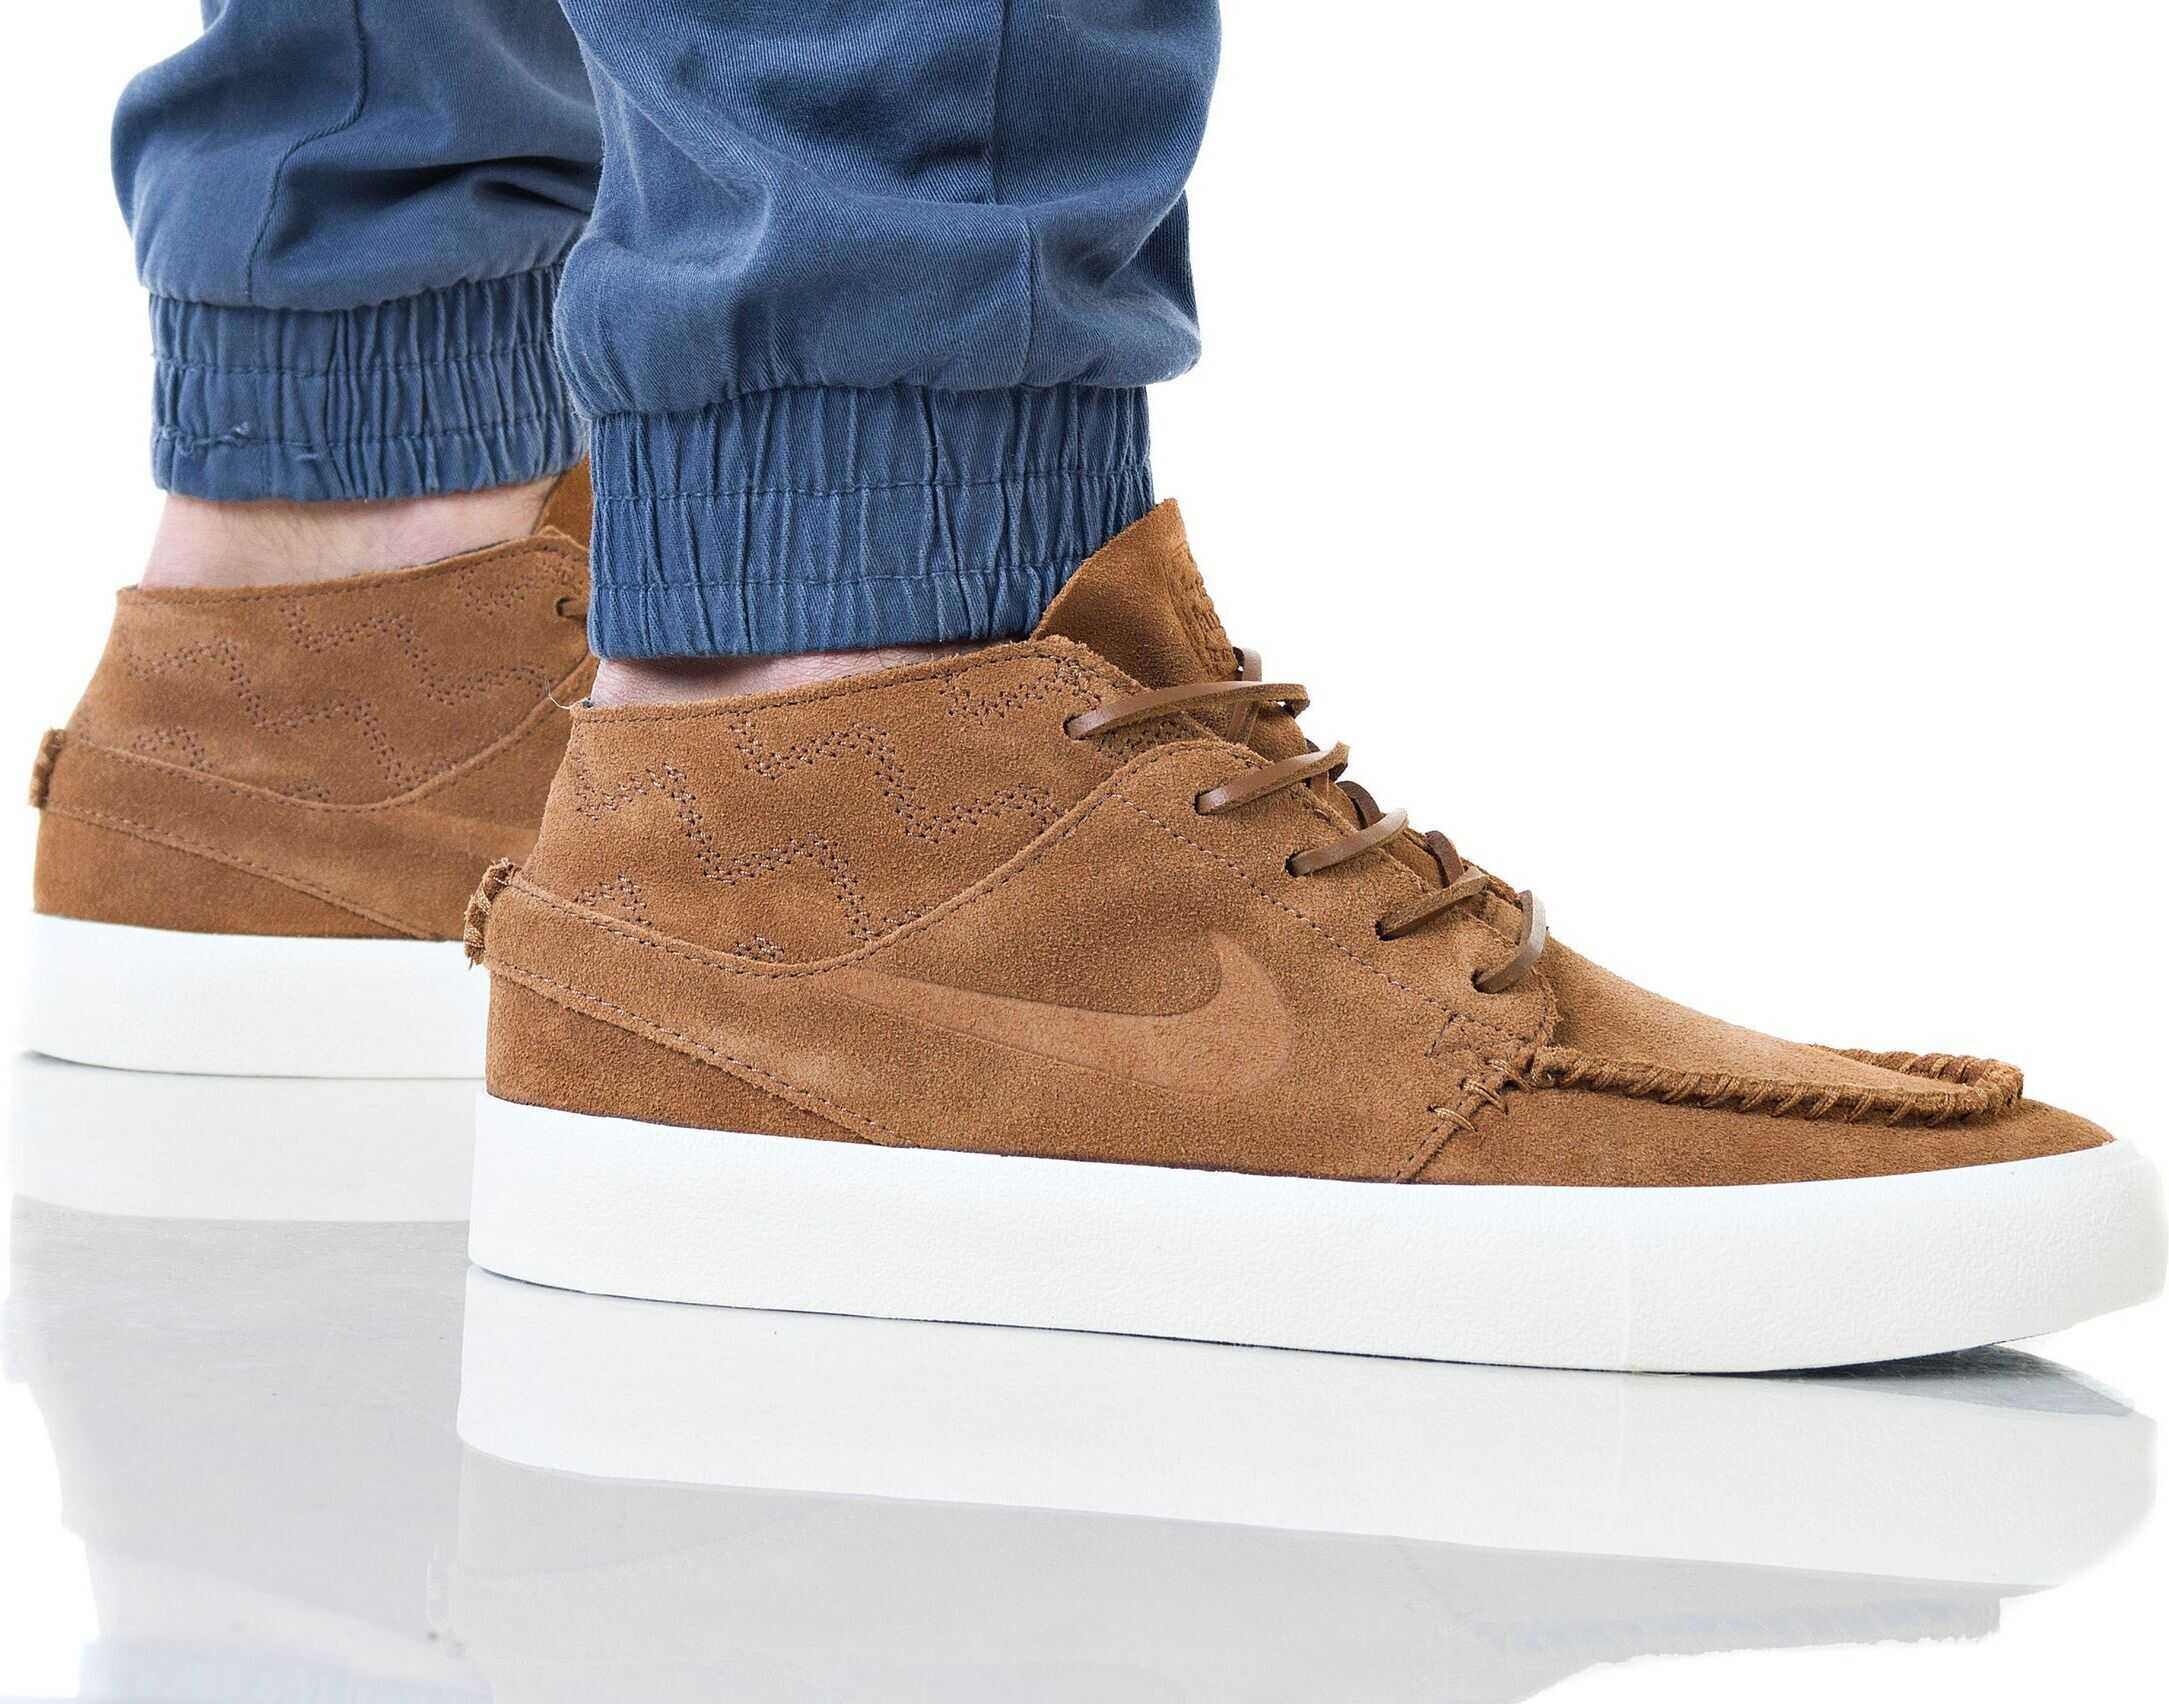 Nike ZOOM JANOSKI MID RM CRAFTED Maron